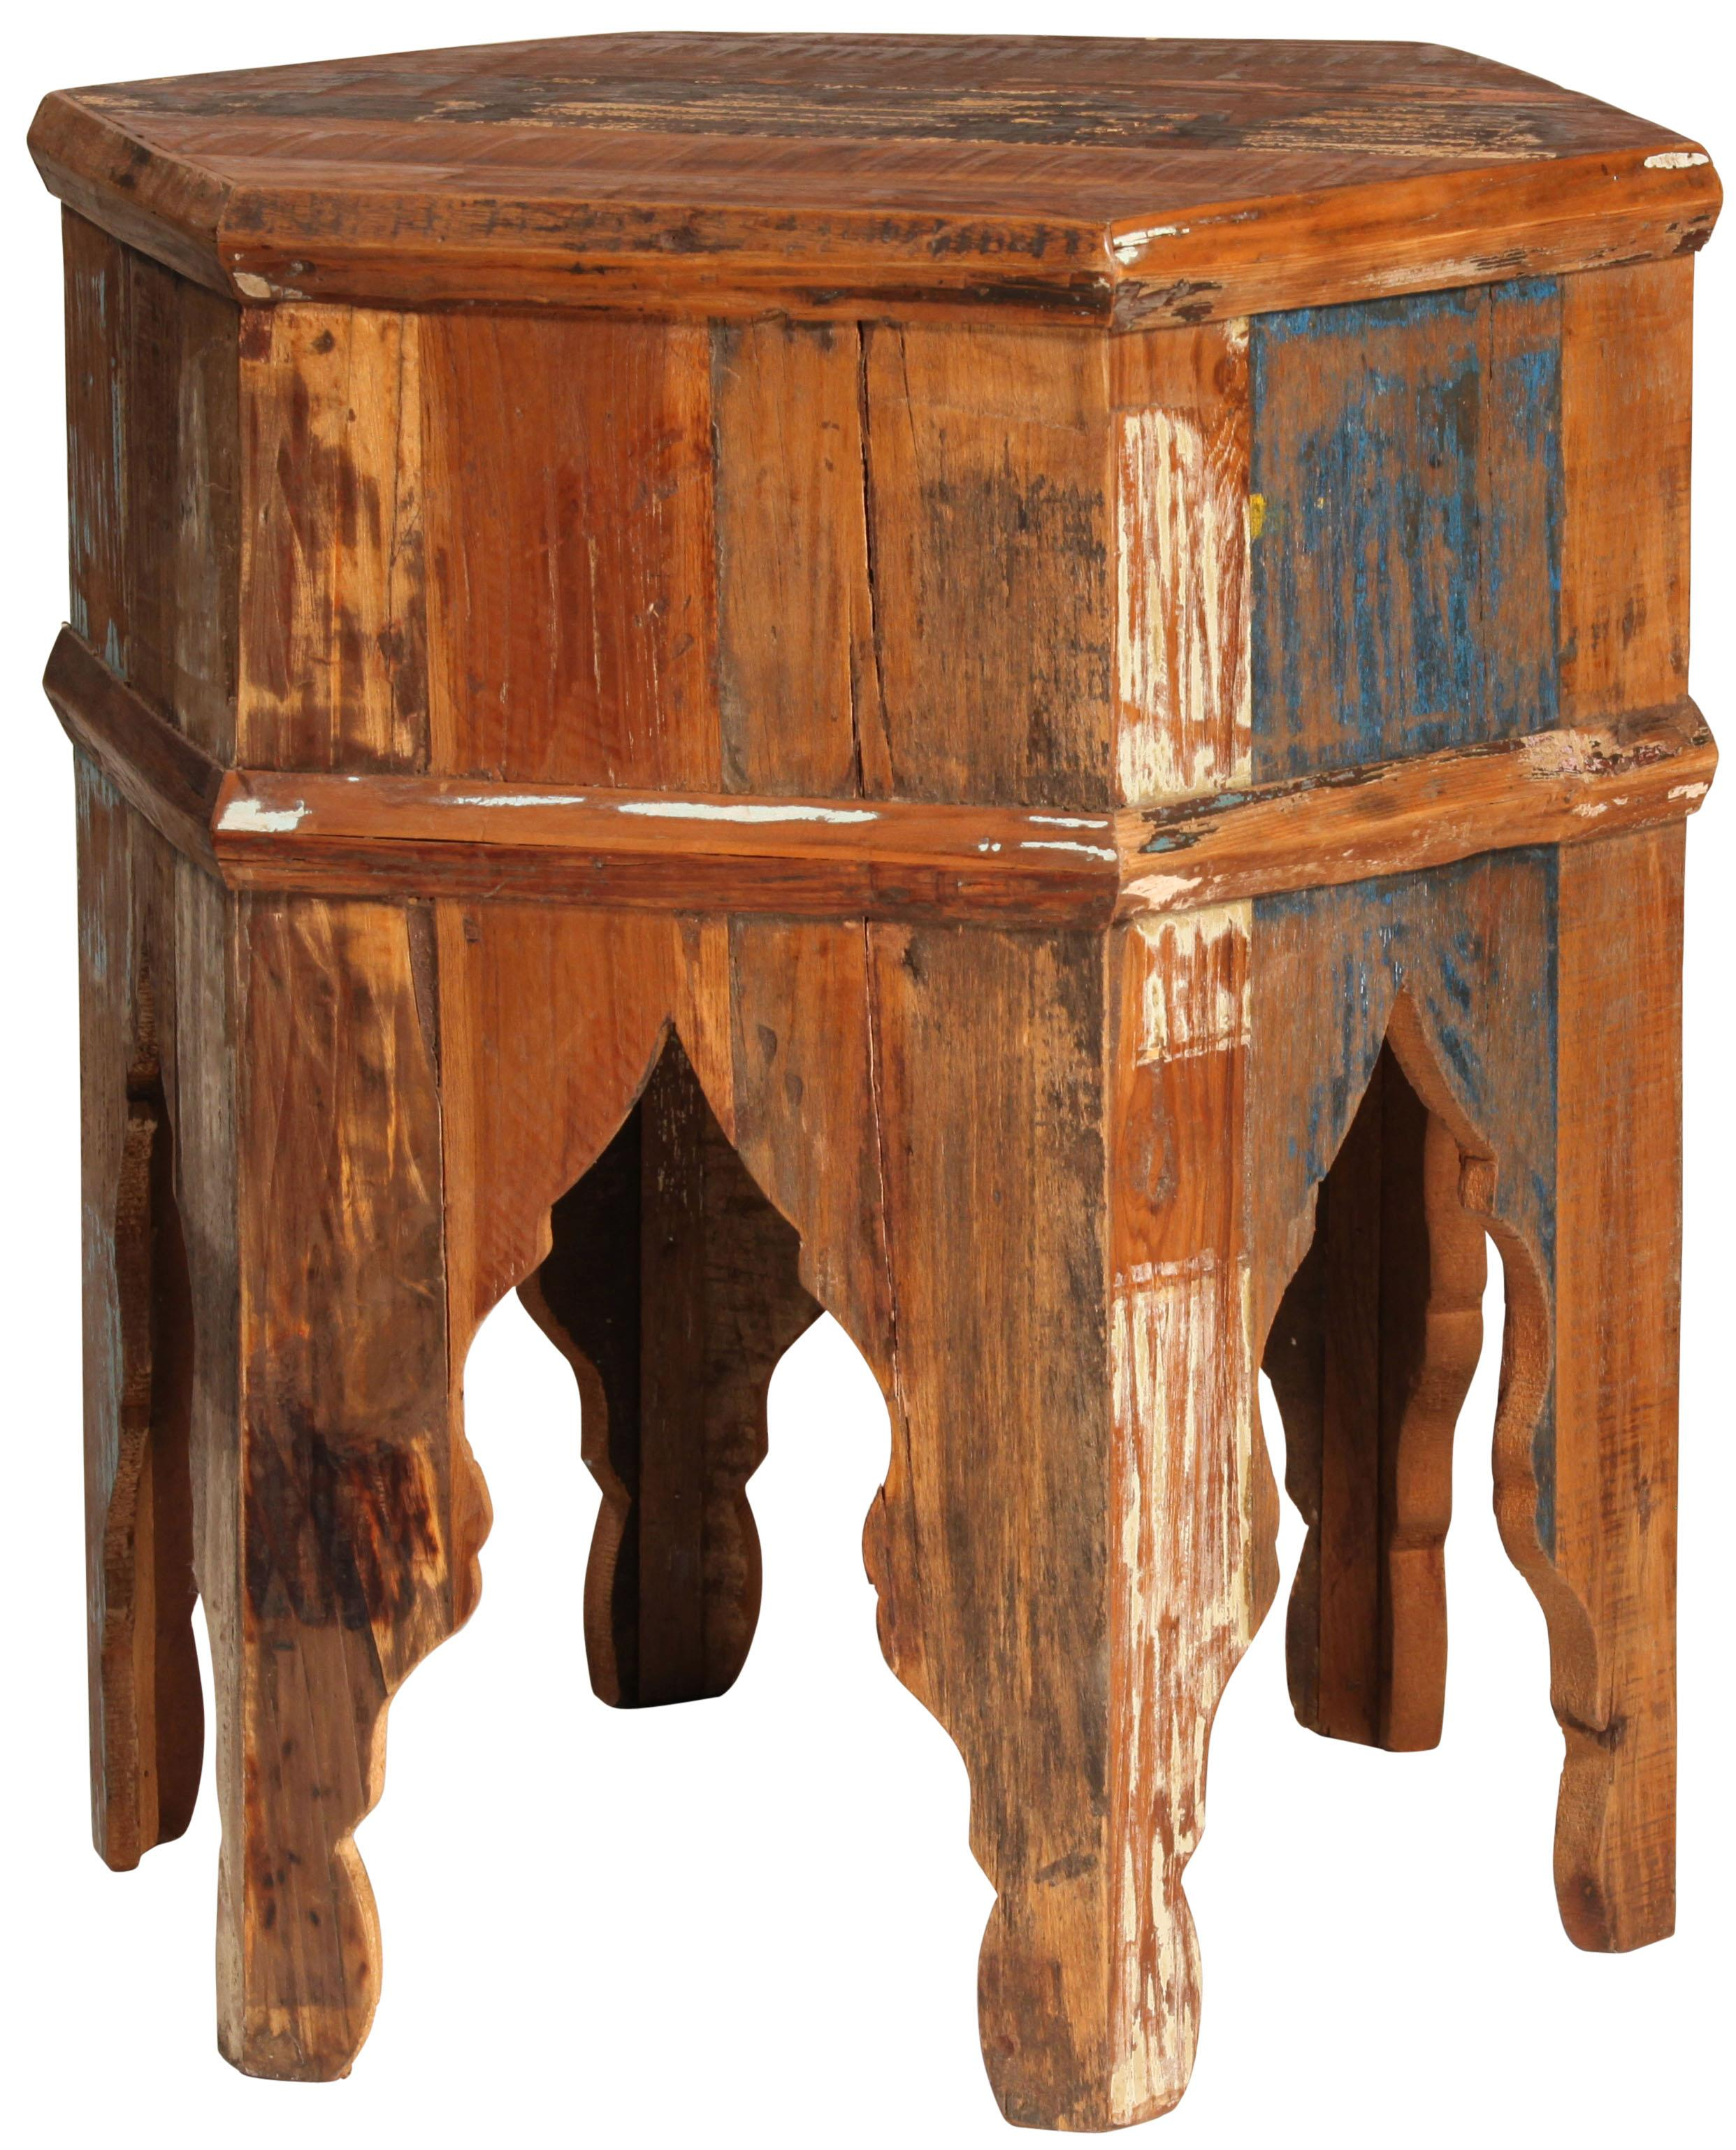 Dovetail Furniture Dovetail Hexagon Wood End Table